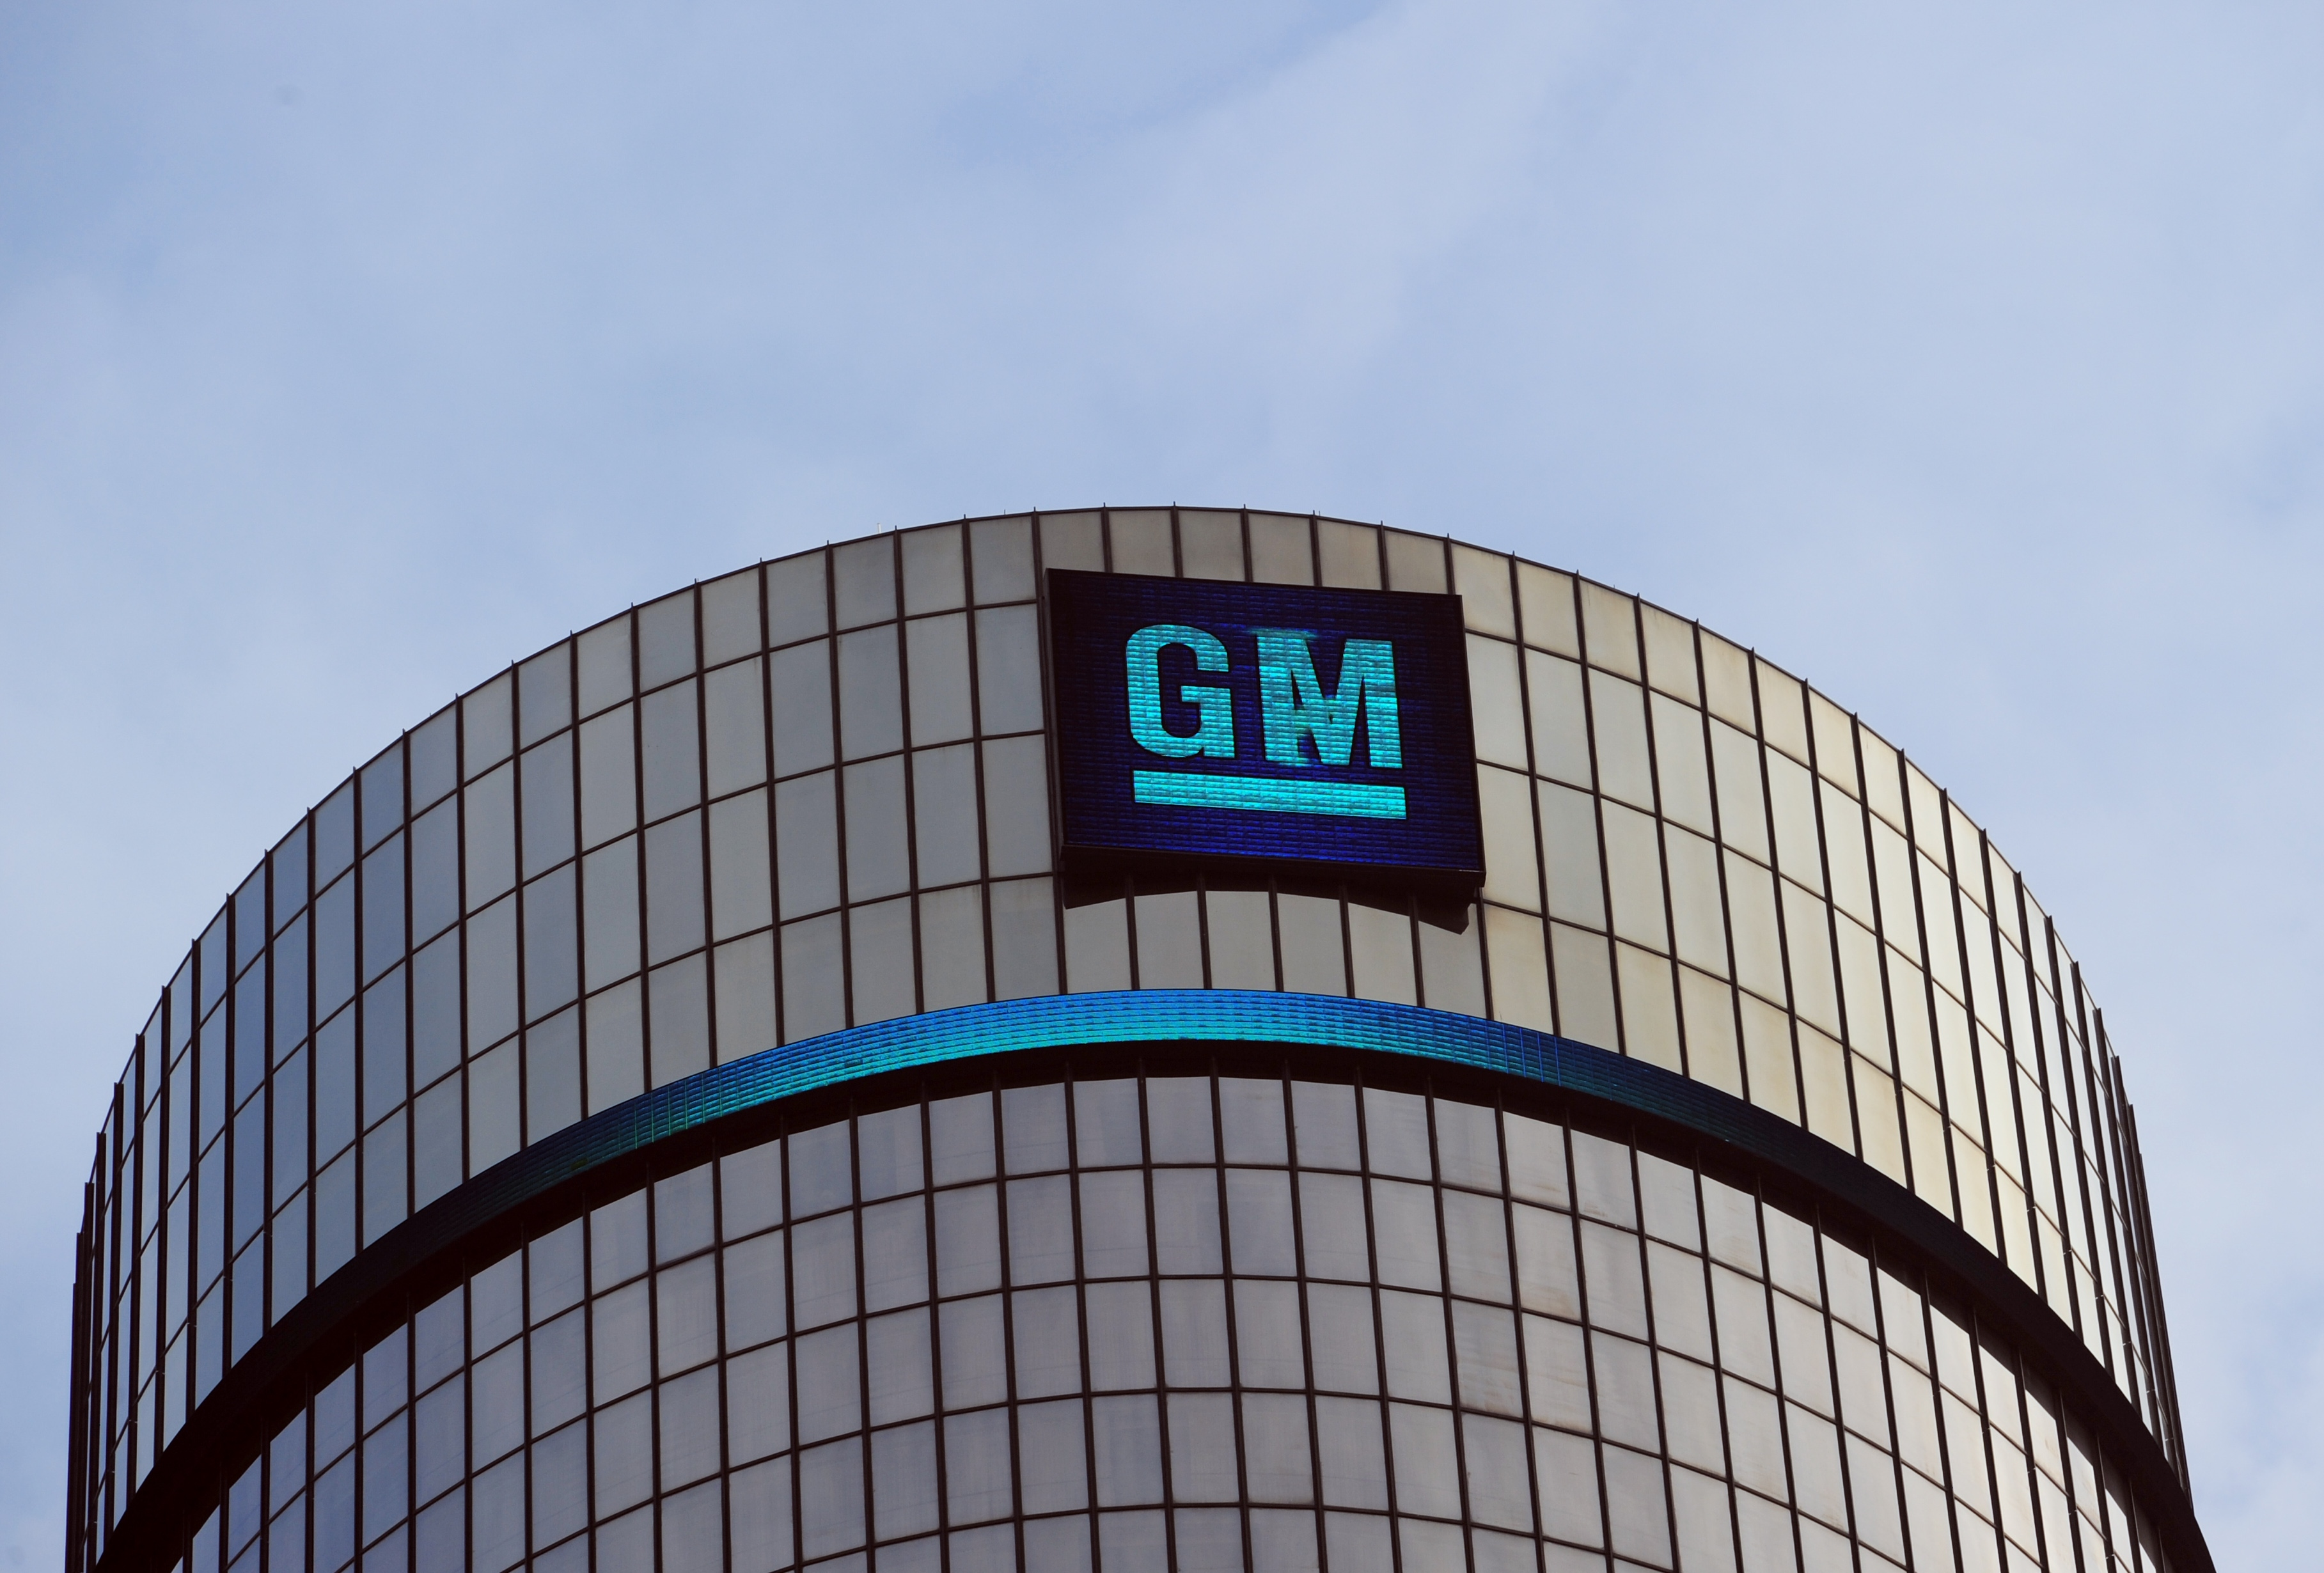 General Motors headquarters in the Renaissance Center are seen on January 14, 2014 in Detroit.